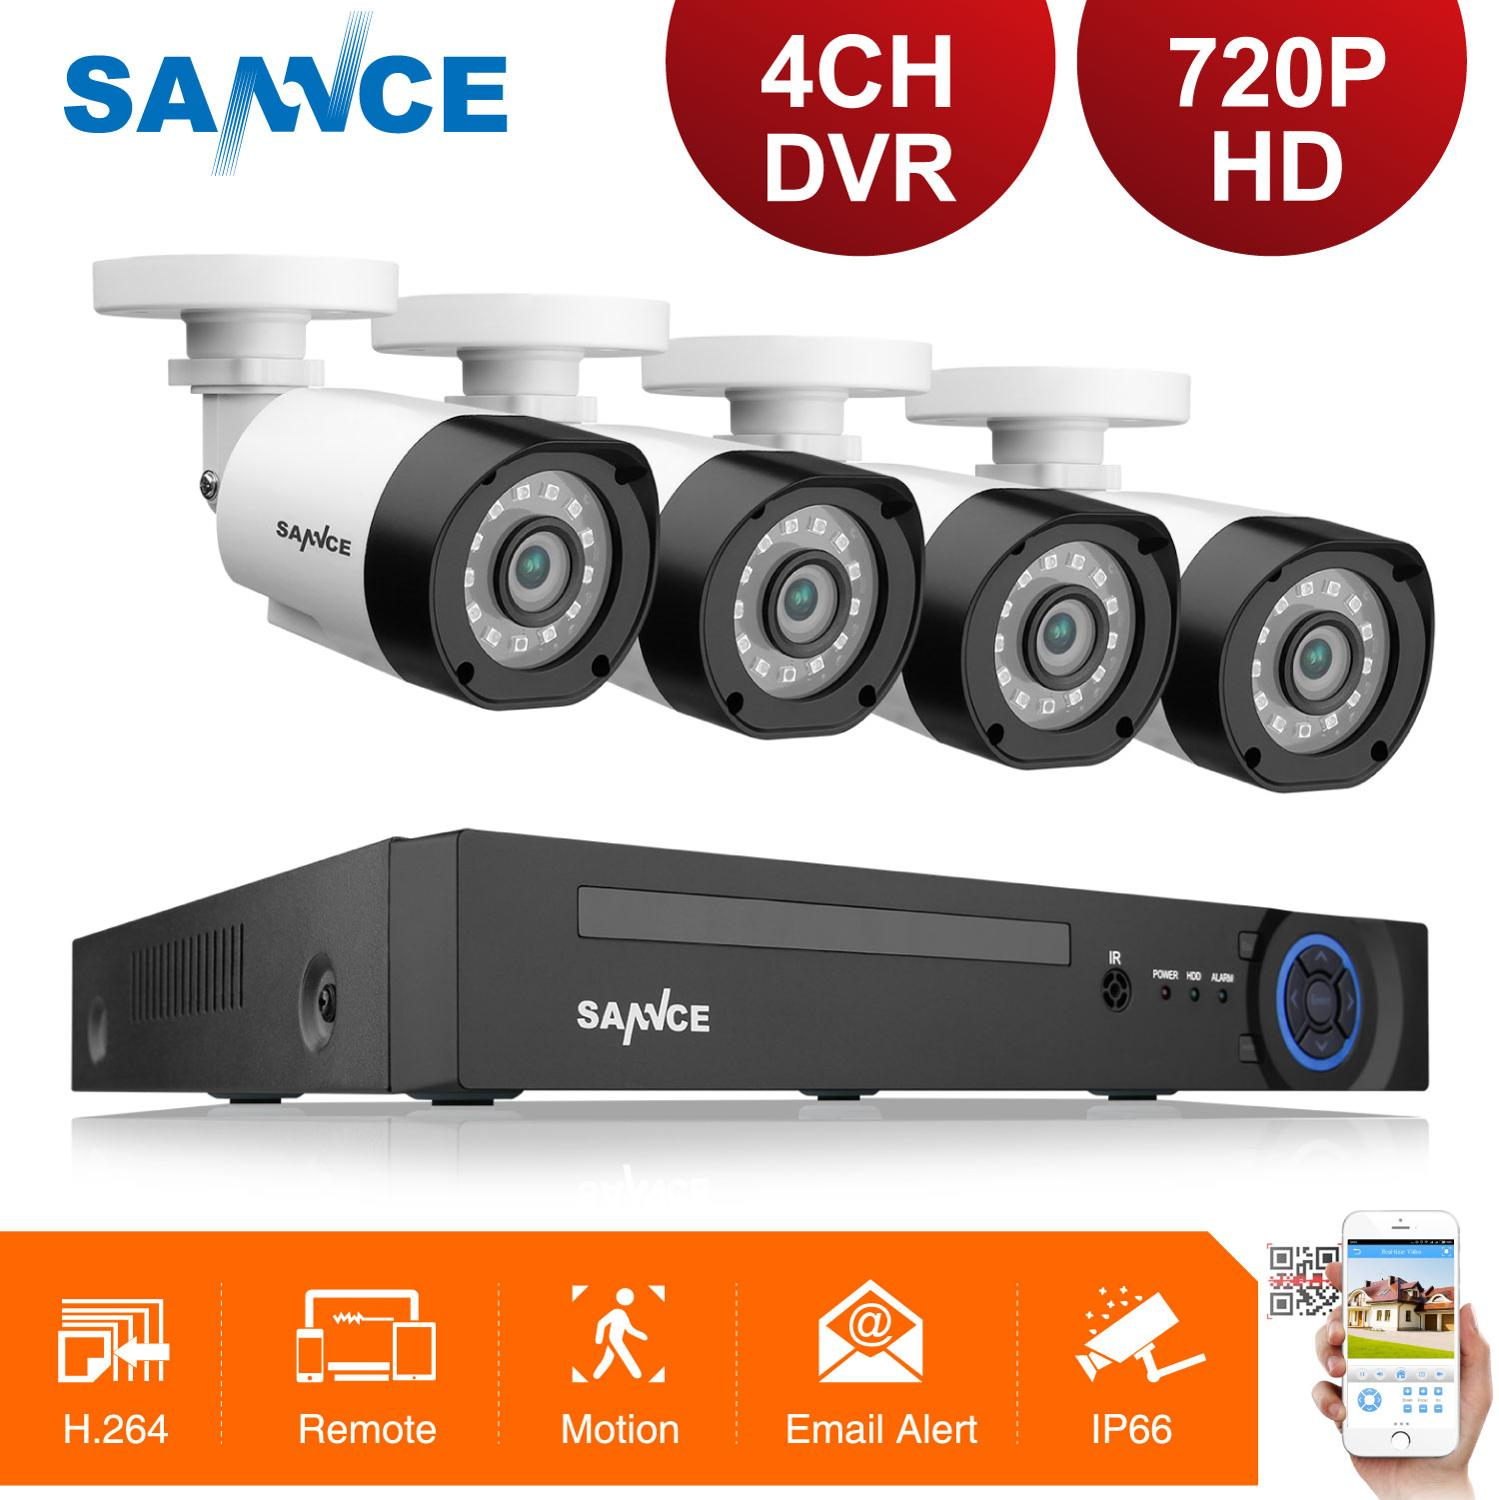 SANNCE 4CH 720P CCTV Security Camera System 5IN1 HDMI DVR With 100W 4PCS Outdoor Weatherproof AHD Cameras Home Surveillance KitSANNCE 4CH 720P CCTV Security Camera System 5IN1 HDMI DVR With 100W 4PCS Outdoor Weatherproof AHD Cameras Home Surveillance Kit